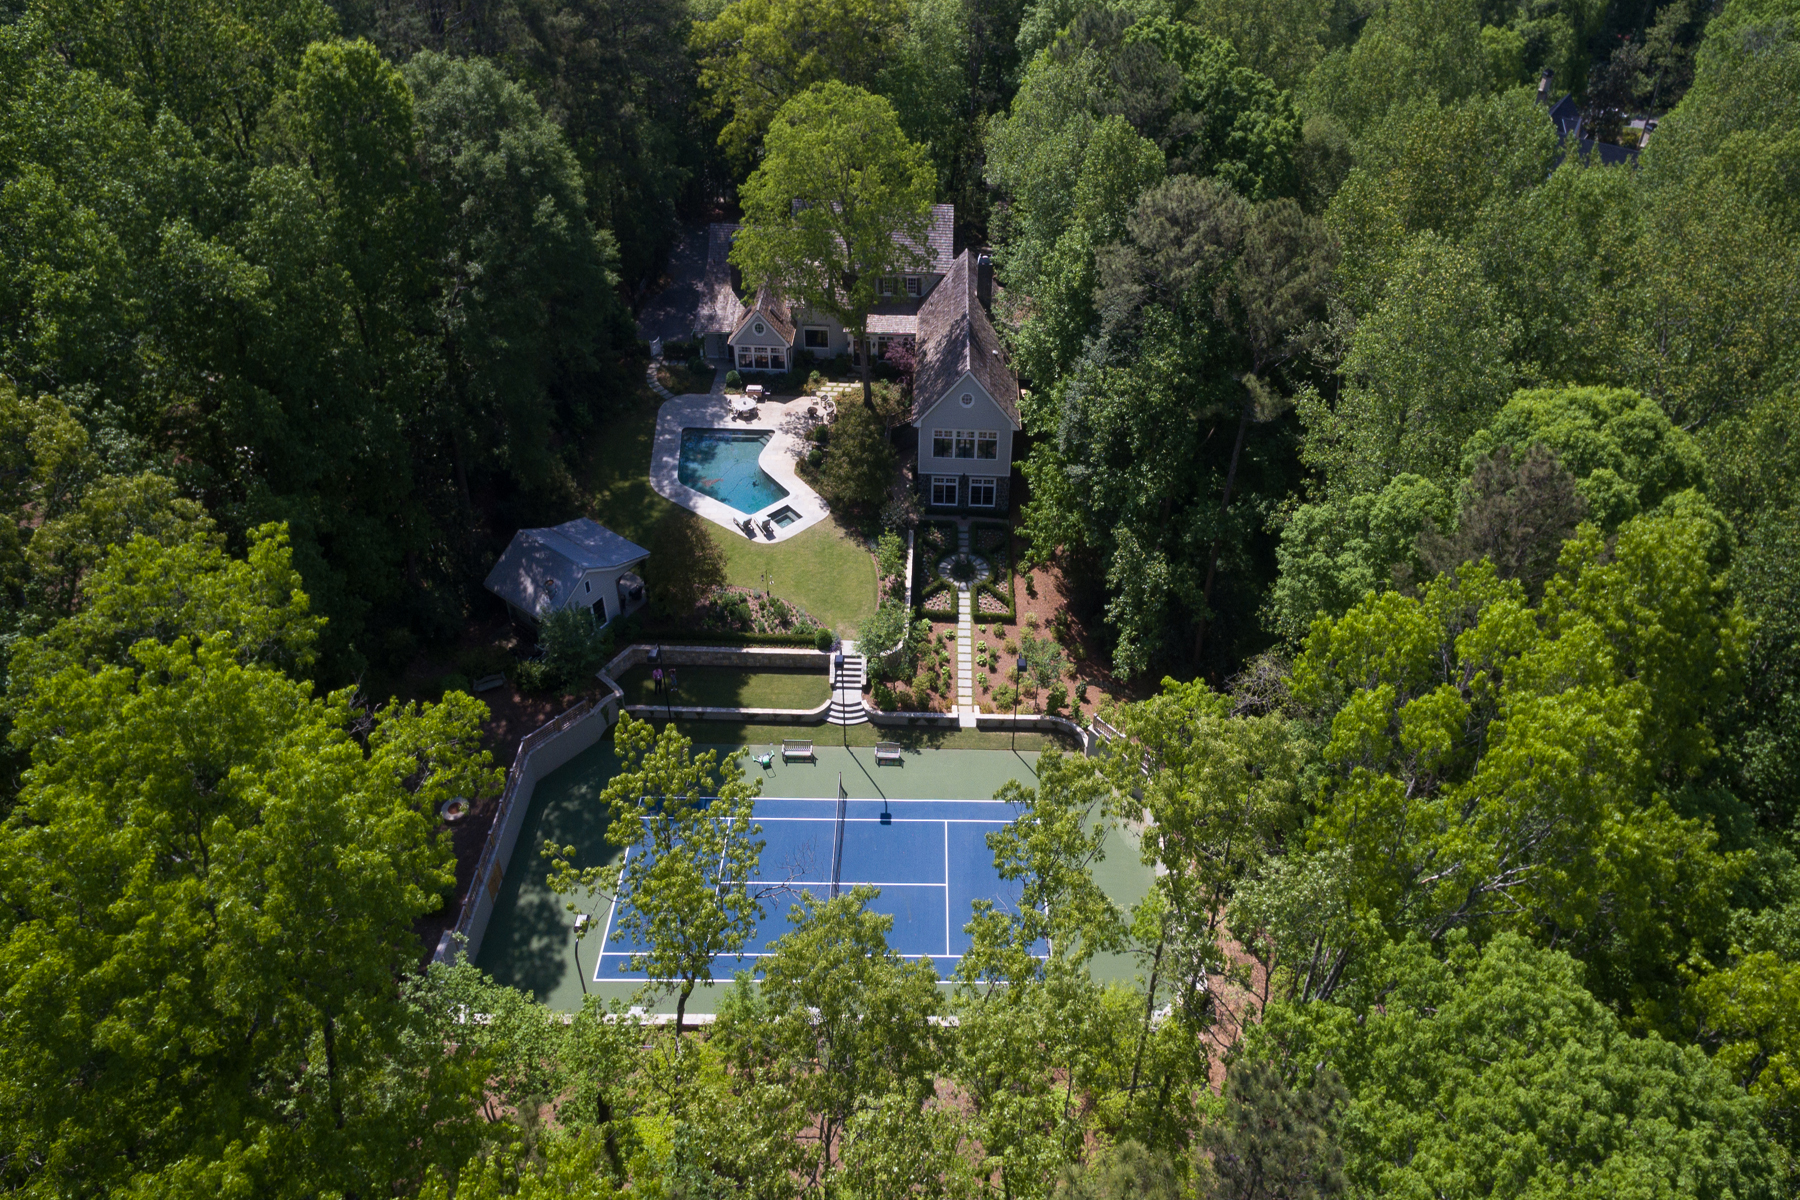 Single Family Home for Sale at Amazing 4.86 Acre Estate Property With Lighted Tennis Court And Pool 4000 Conway Valley Road NW Atlanta, Georgia 30327 United States